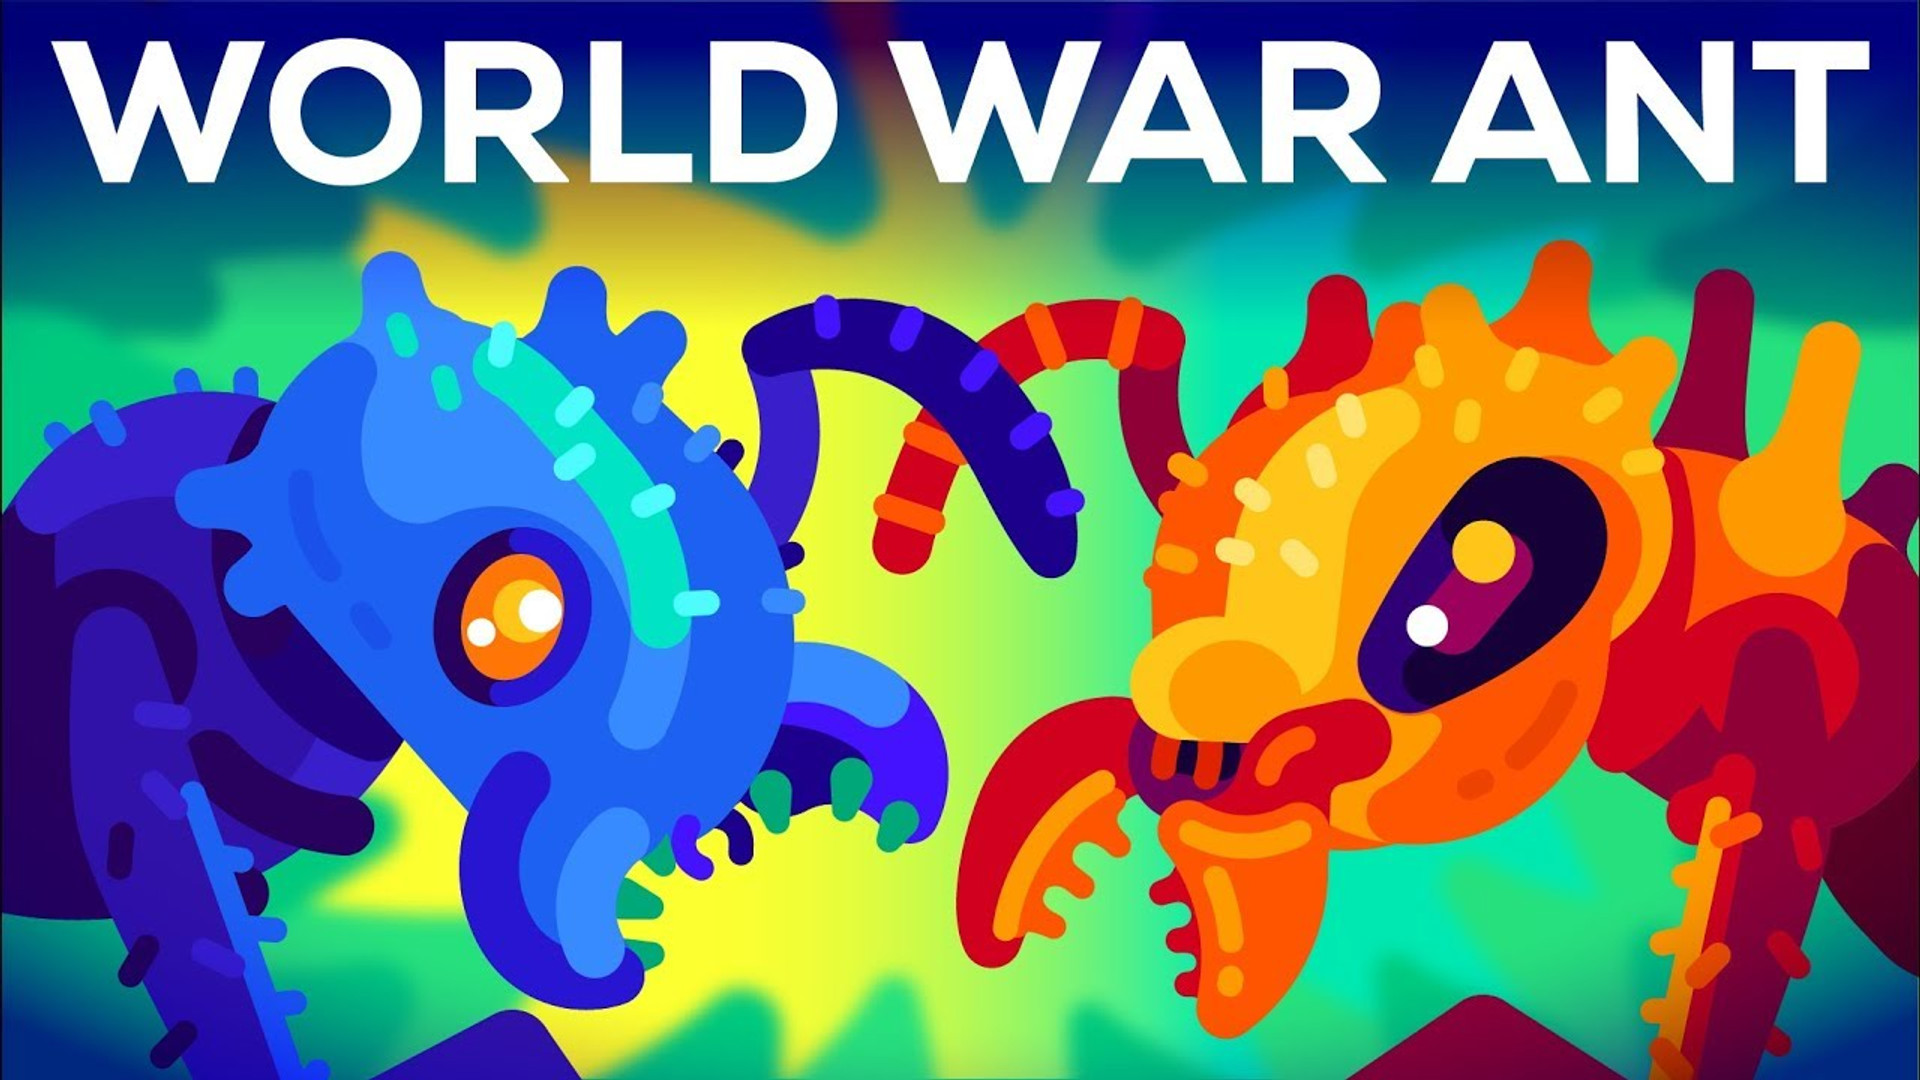 Kurzgesagt - World War Ant